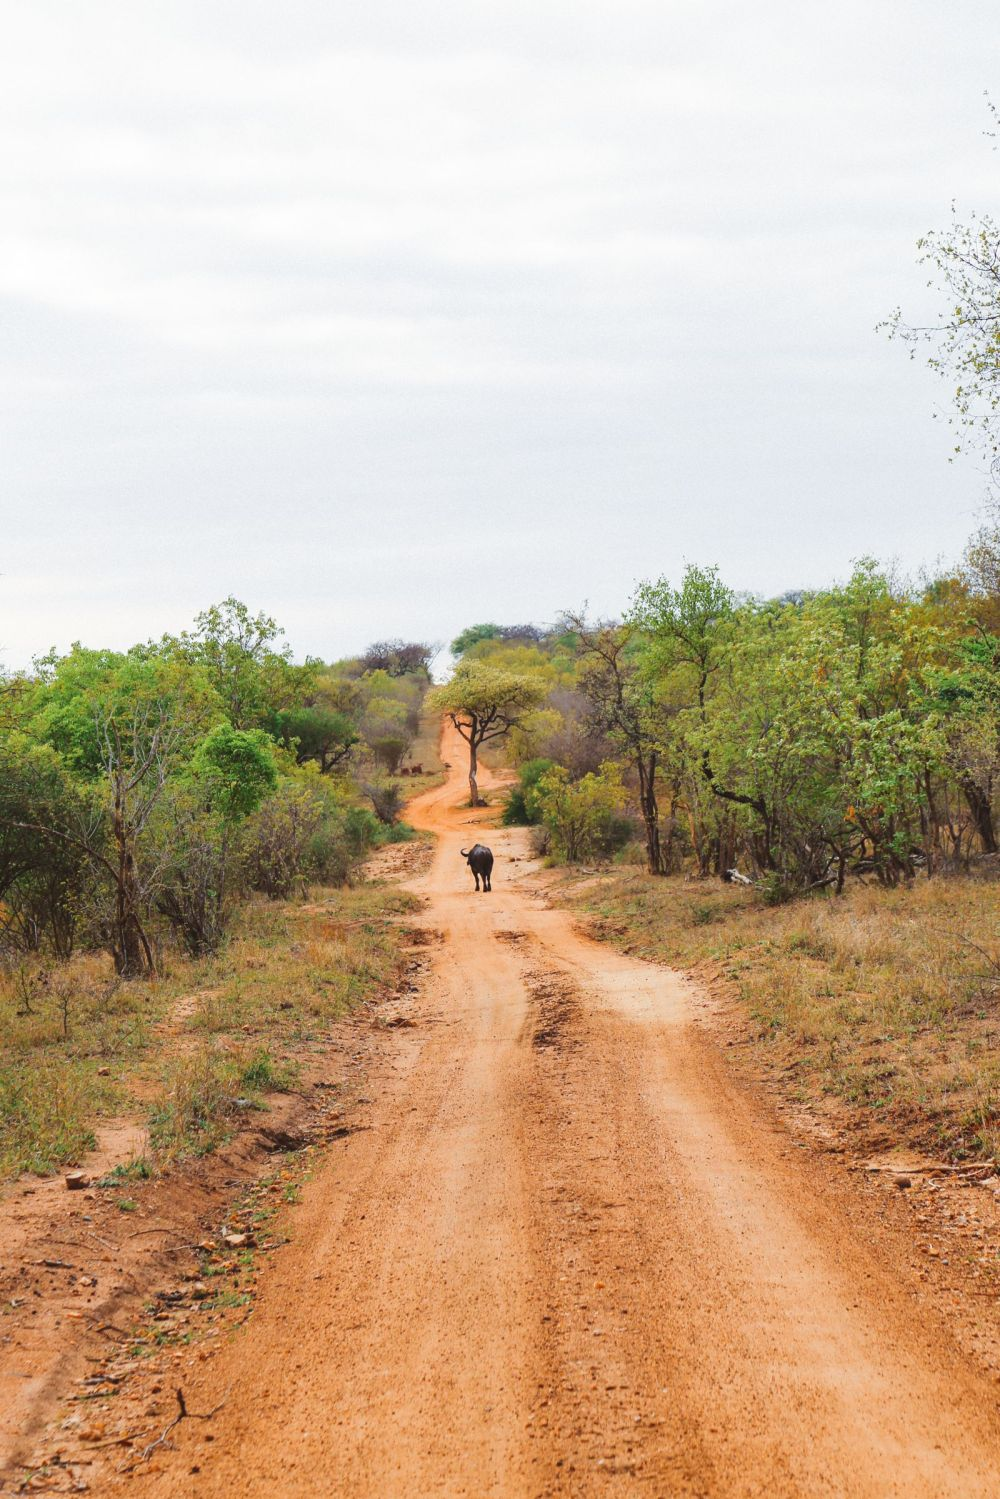 Midnight Lions, Skittish Giraffes And The Deadliest Of The Safari Big 5 In South Africa (9)